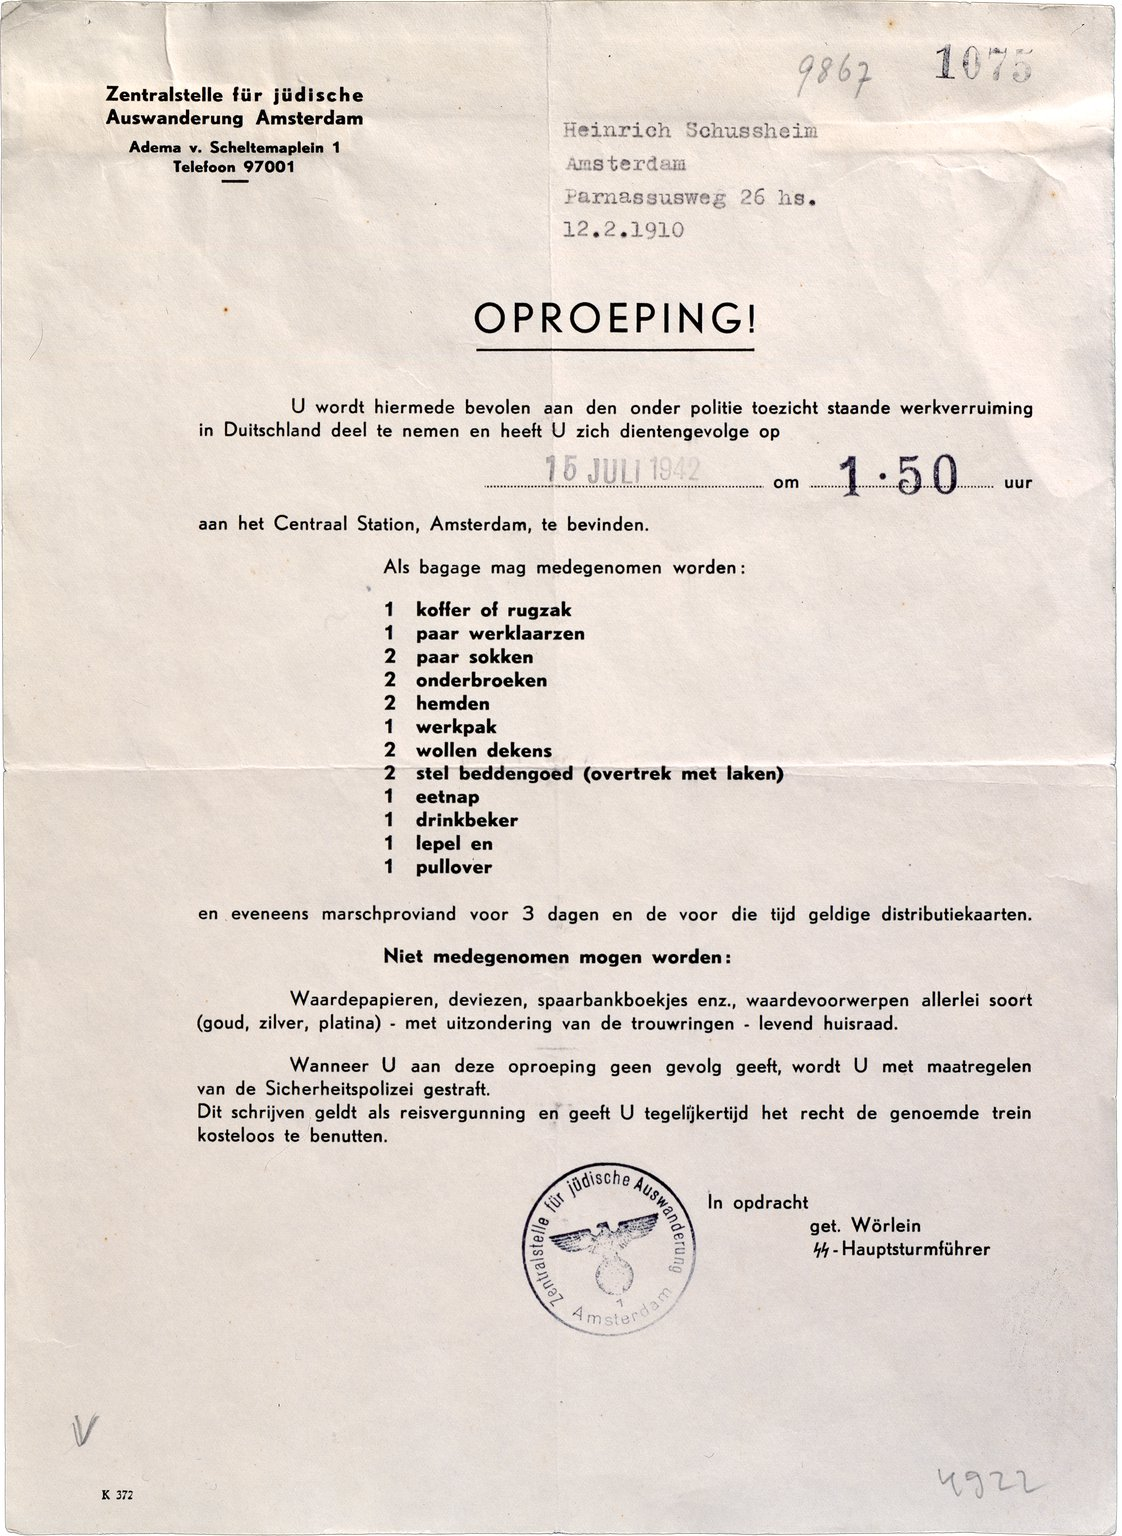 The Jews who have been called up are given this form at the Zentralstelle für jüdische Auswanderung. It specifies what they can take with them, for example work clothes and work boots, and when they have to leave, 16 July 1942.